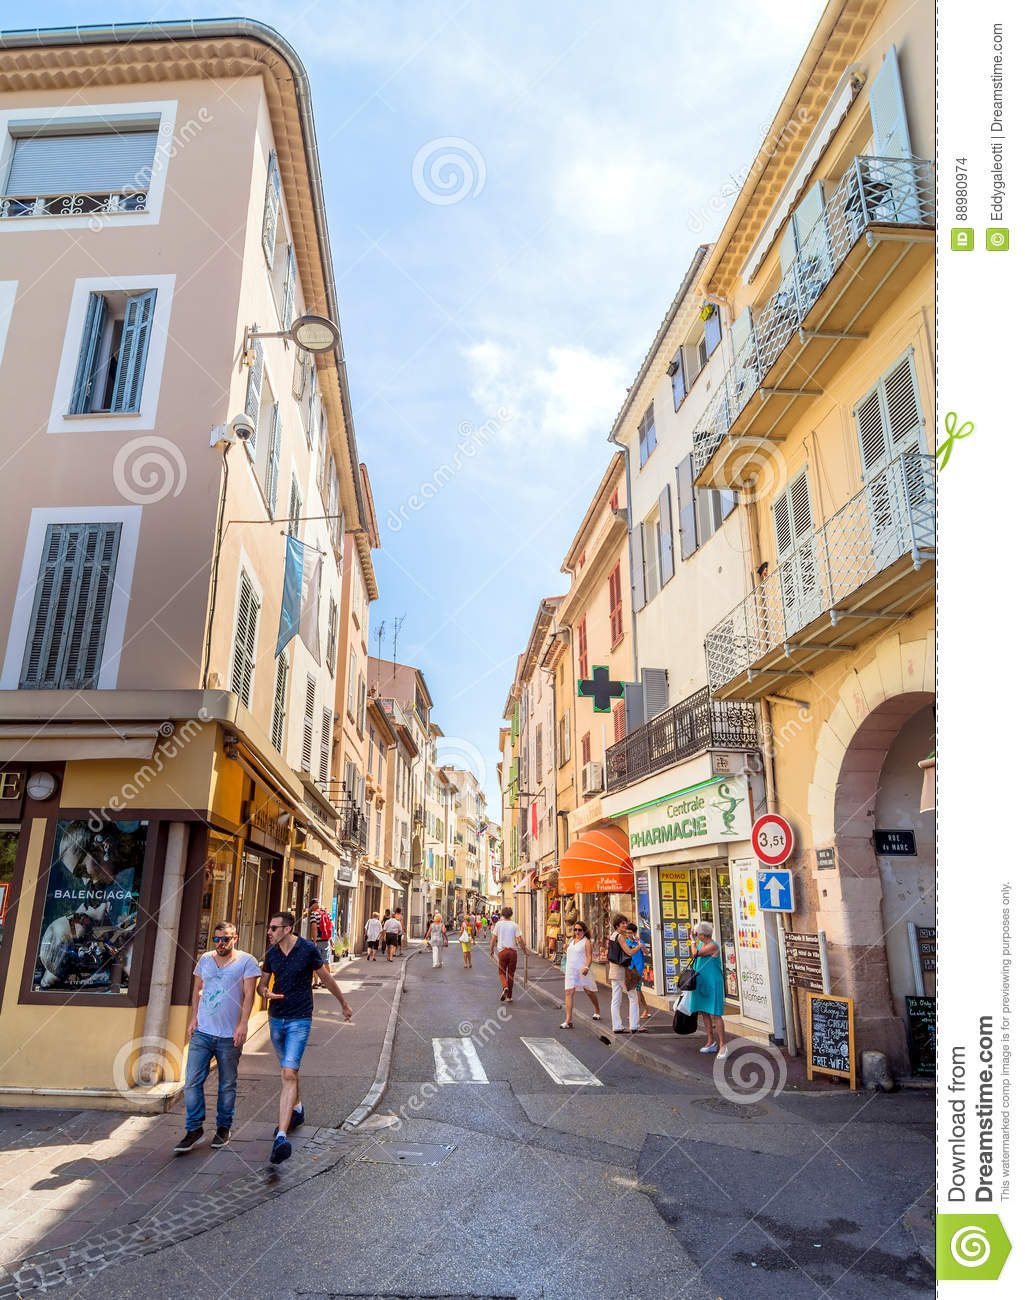 street view in antibes old town france editorial stock image image of shopping restaurant. Black Bedroom Furniture Sets. Home Design Ideas